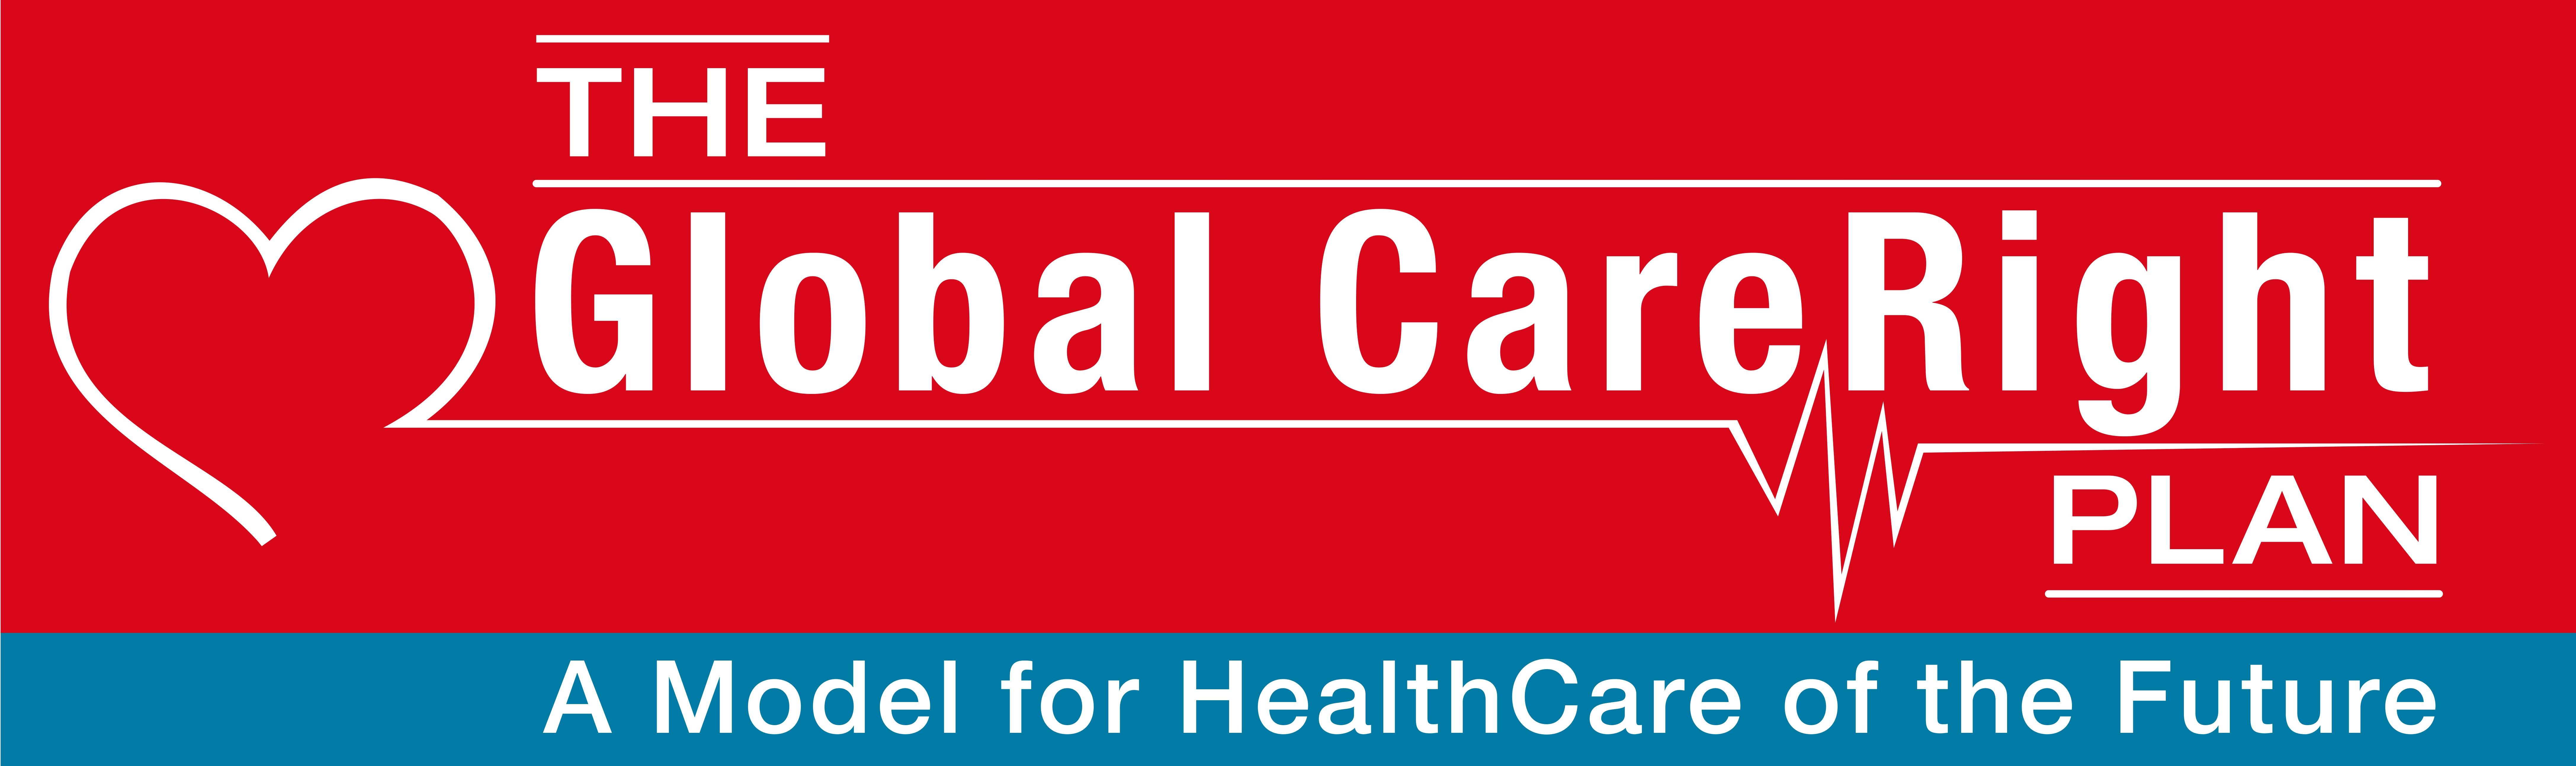 CareRight HealthCare International logo